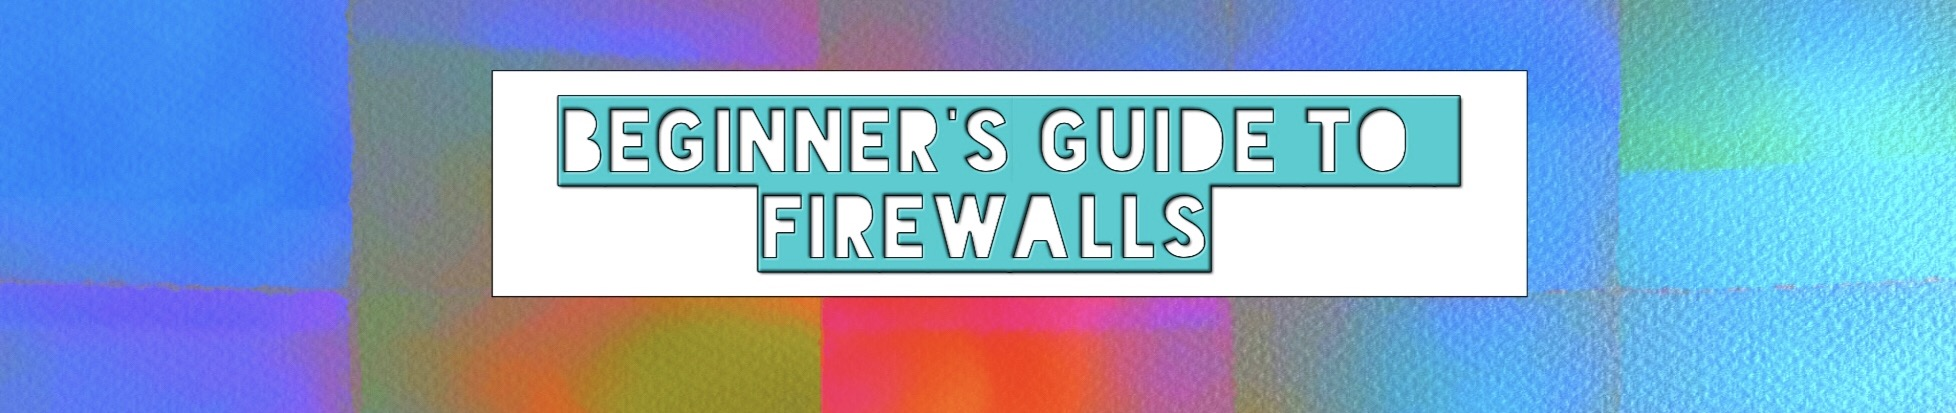 What Hacker's Don't Want You to Know About Firewalls | vsatips